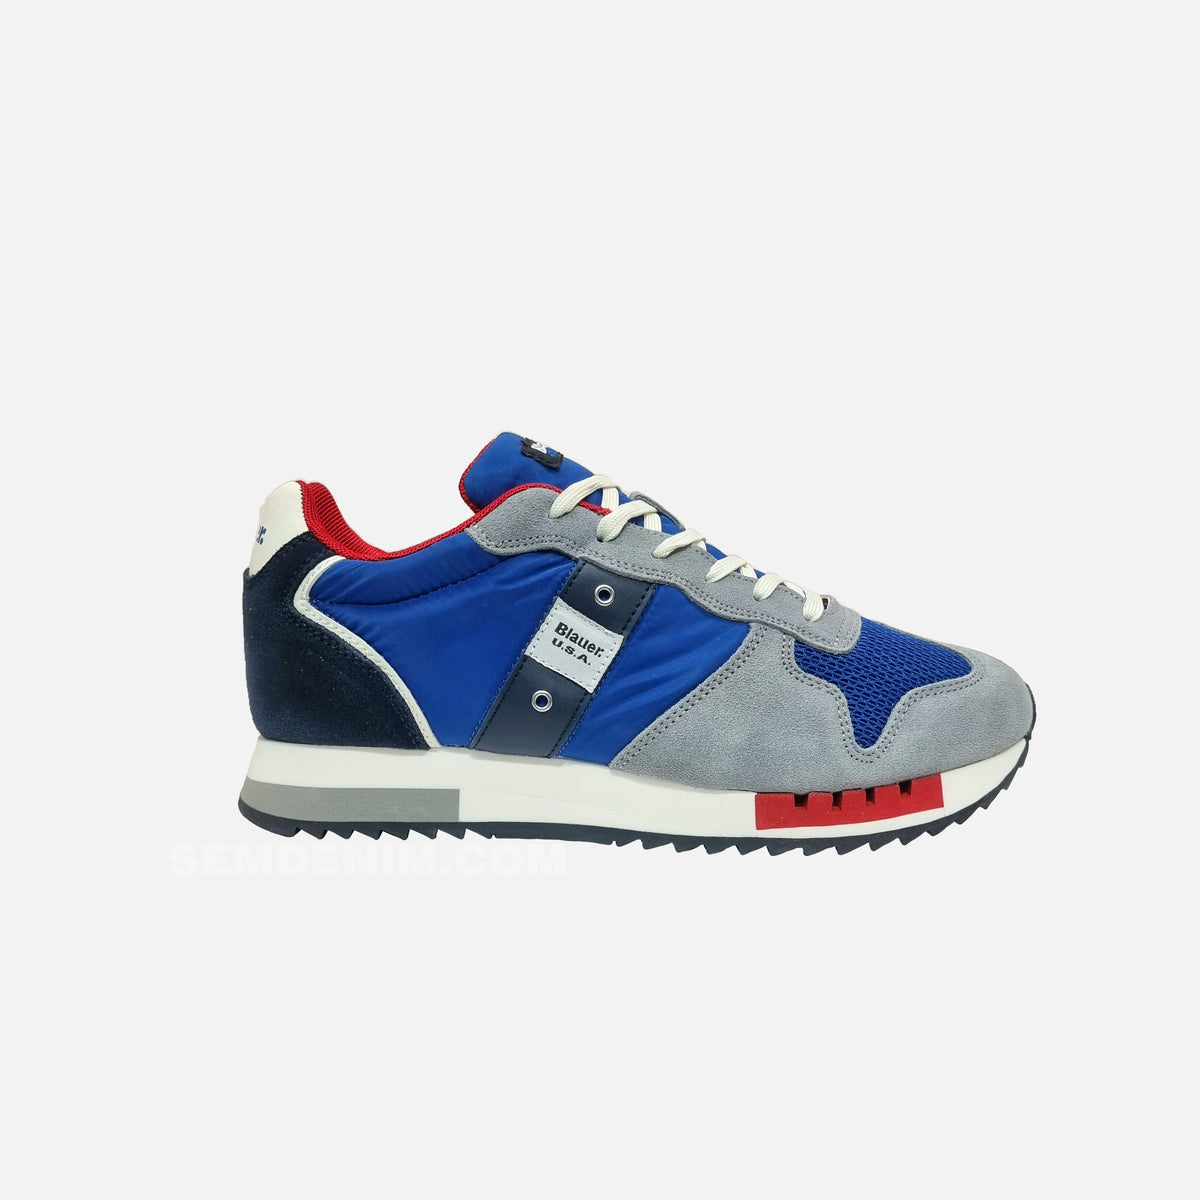 BLAUER SNEAKERS QUEENS STONEWASHED UOMO